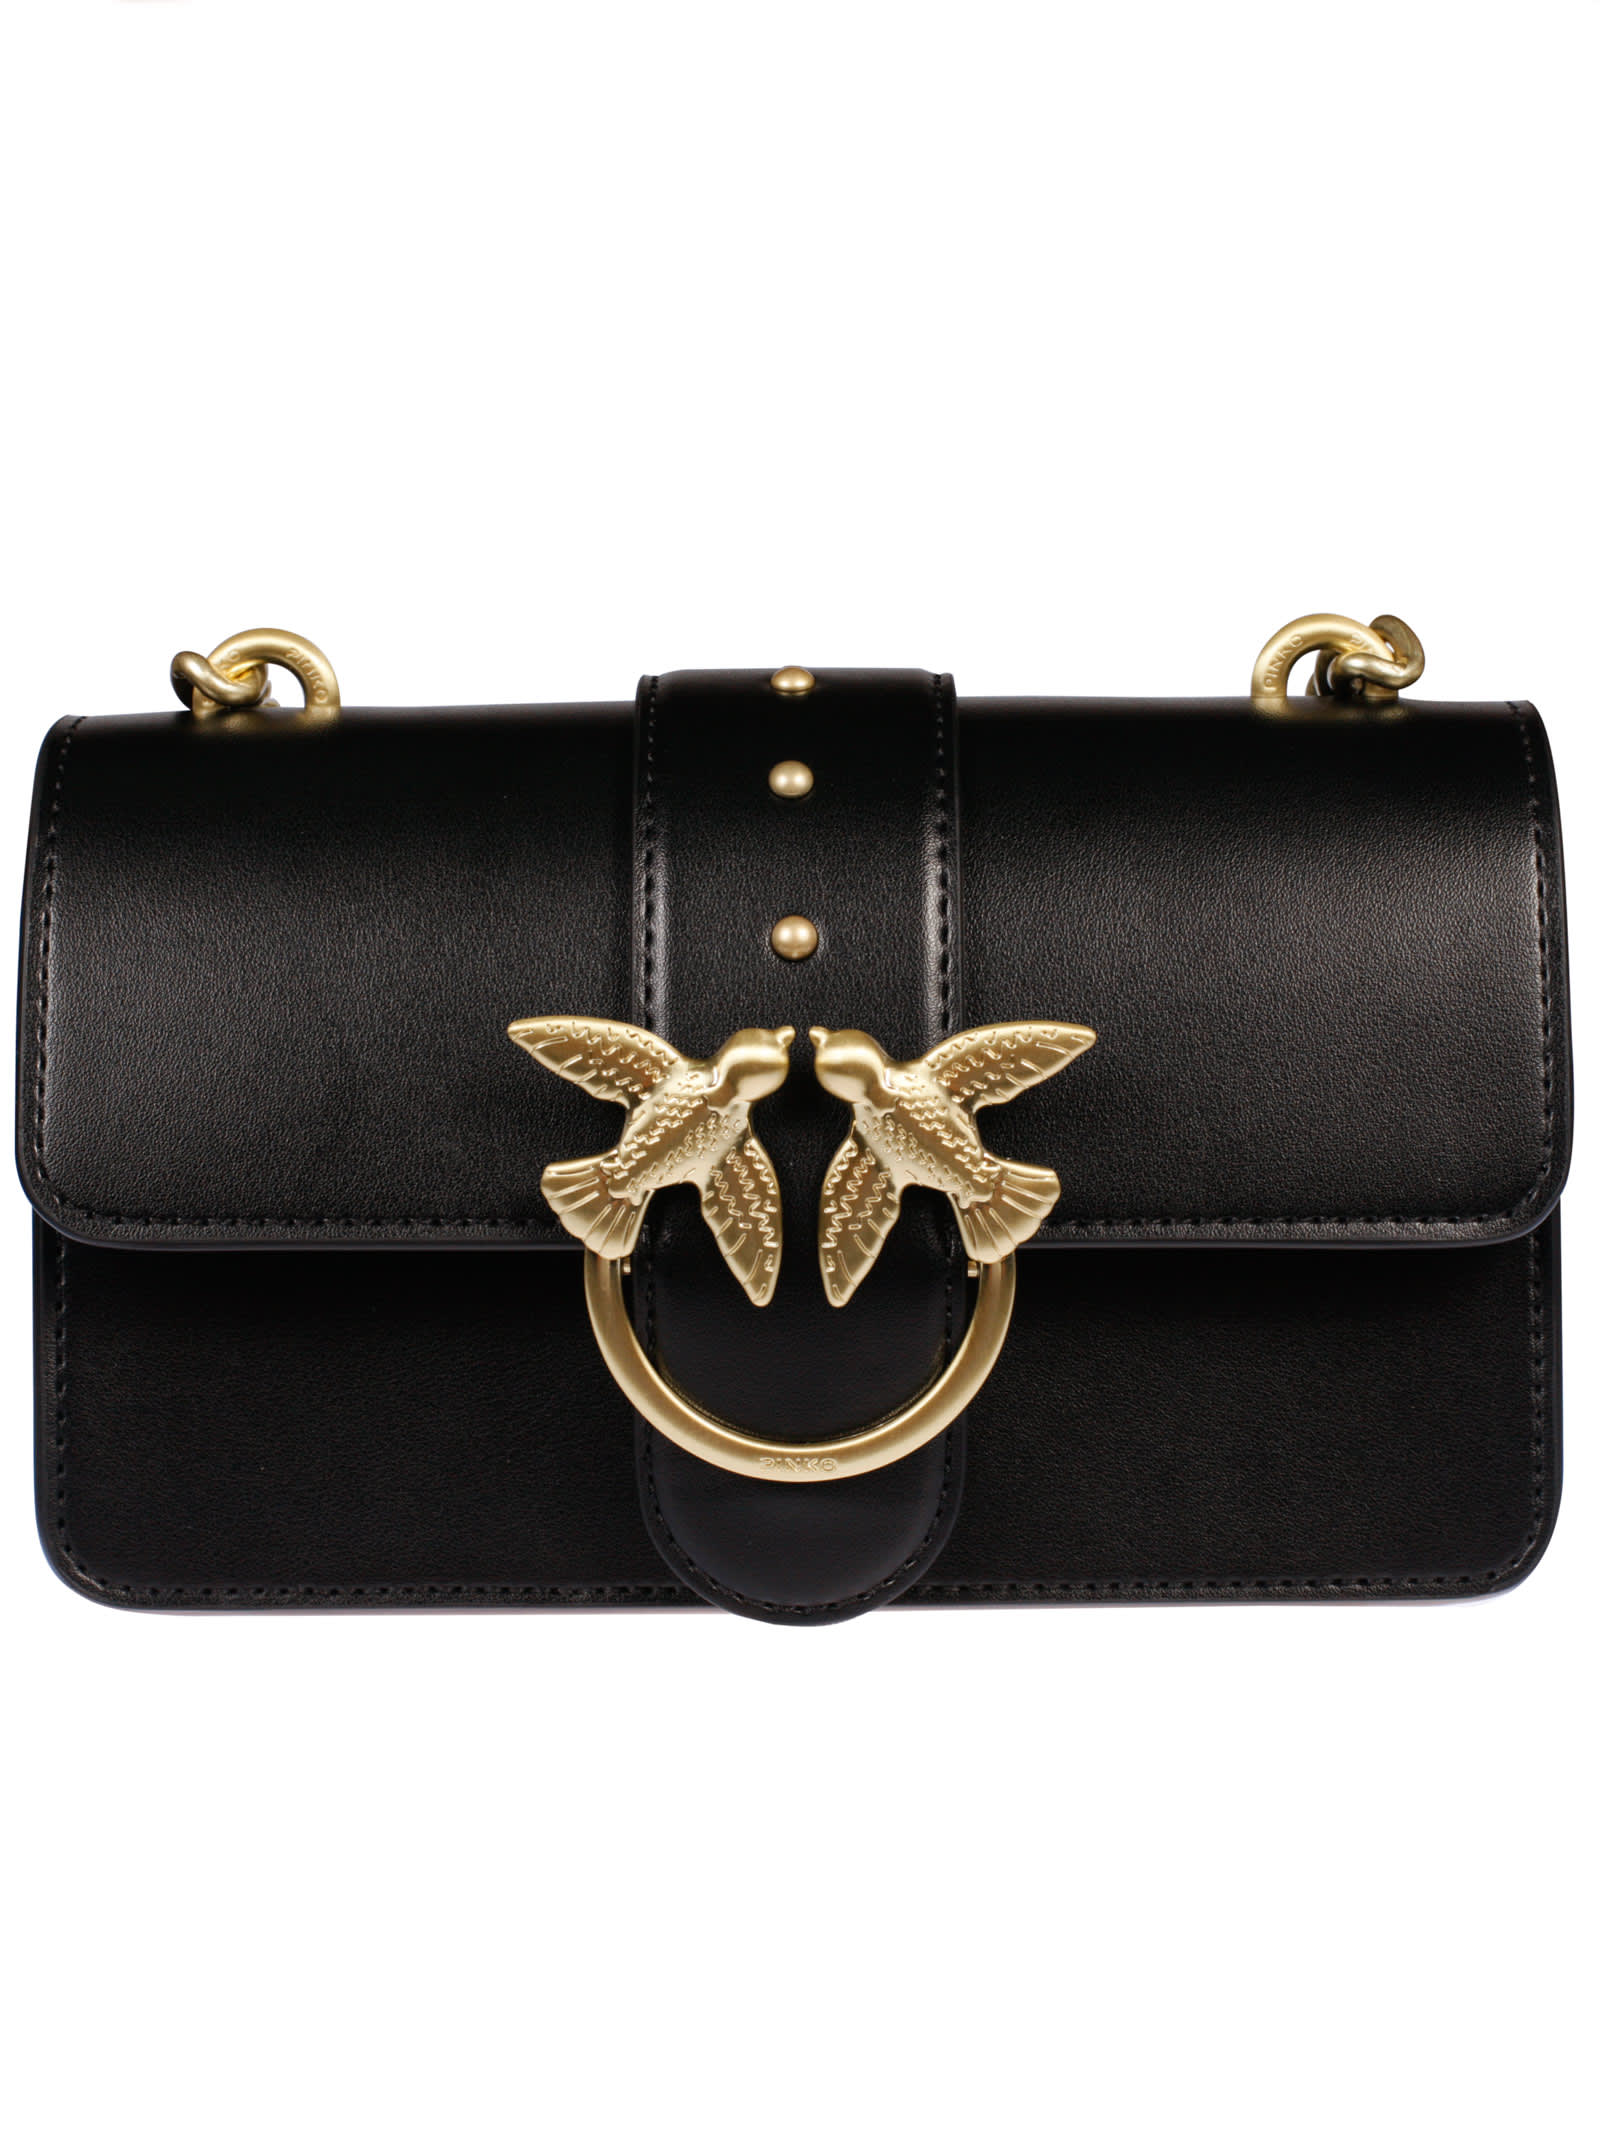 new product b62e1 df1f7 Best price on the market at italist | Pinko Pinko Mini Love Simply Shoulder  Bag